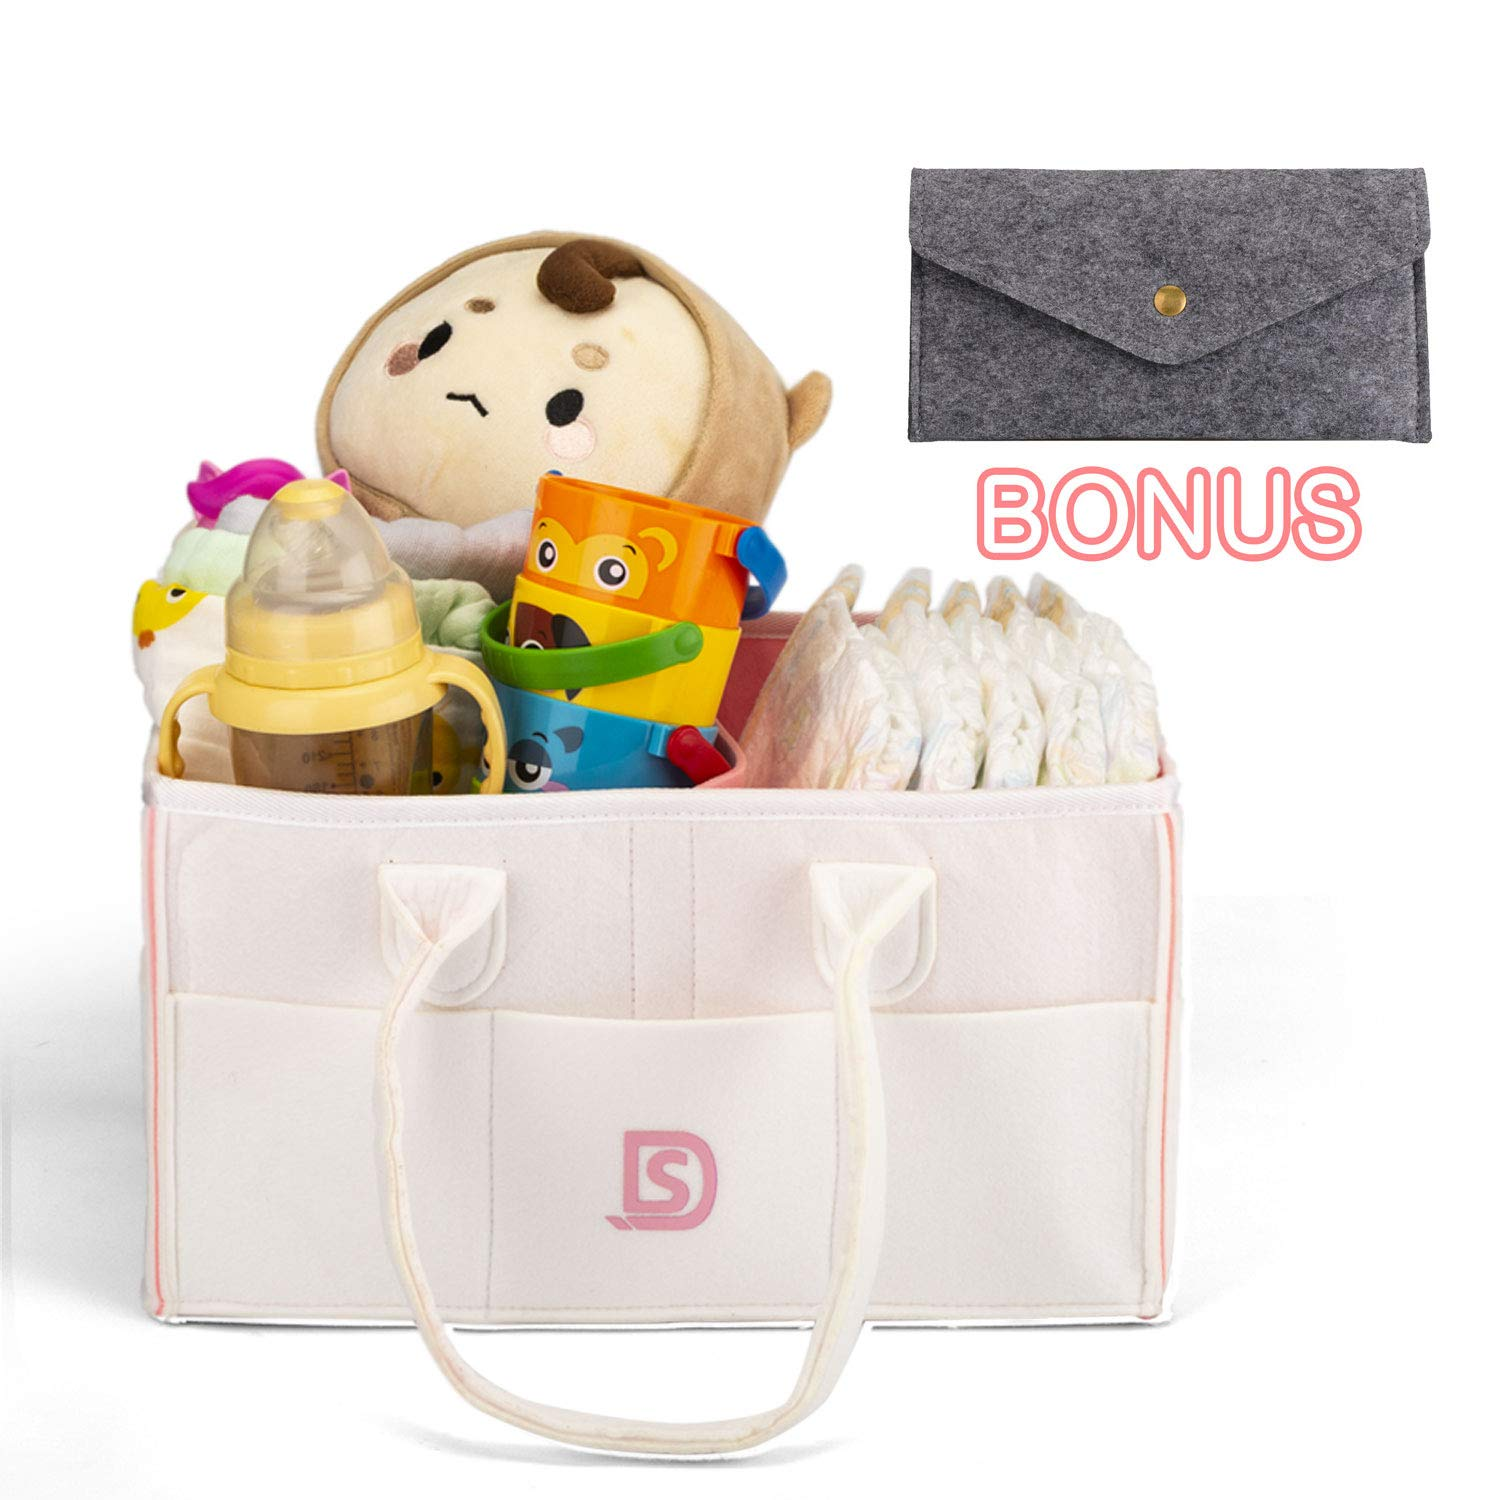 Diaper Caddy Organizer Nursery Diaper Tote Bag Portable Car Travel Felt Diaper Basket Infant Boy Girl Baby Essentials Storage Bin for Changing Table - Cute Gift for Kids (White)